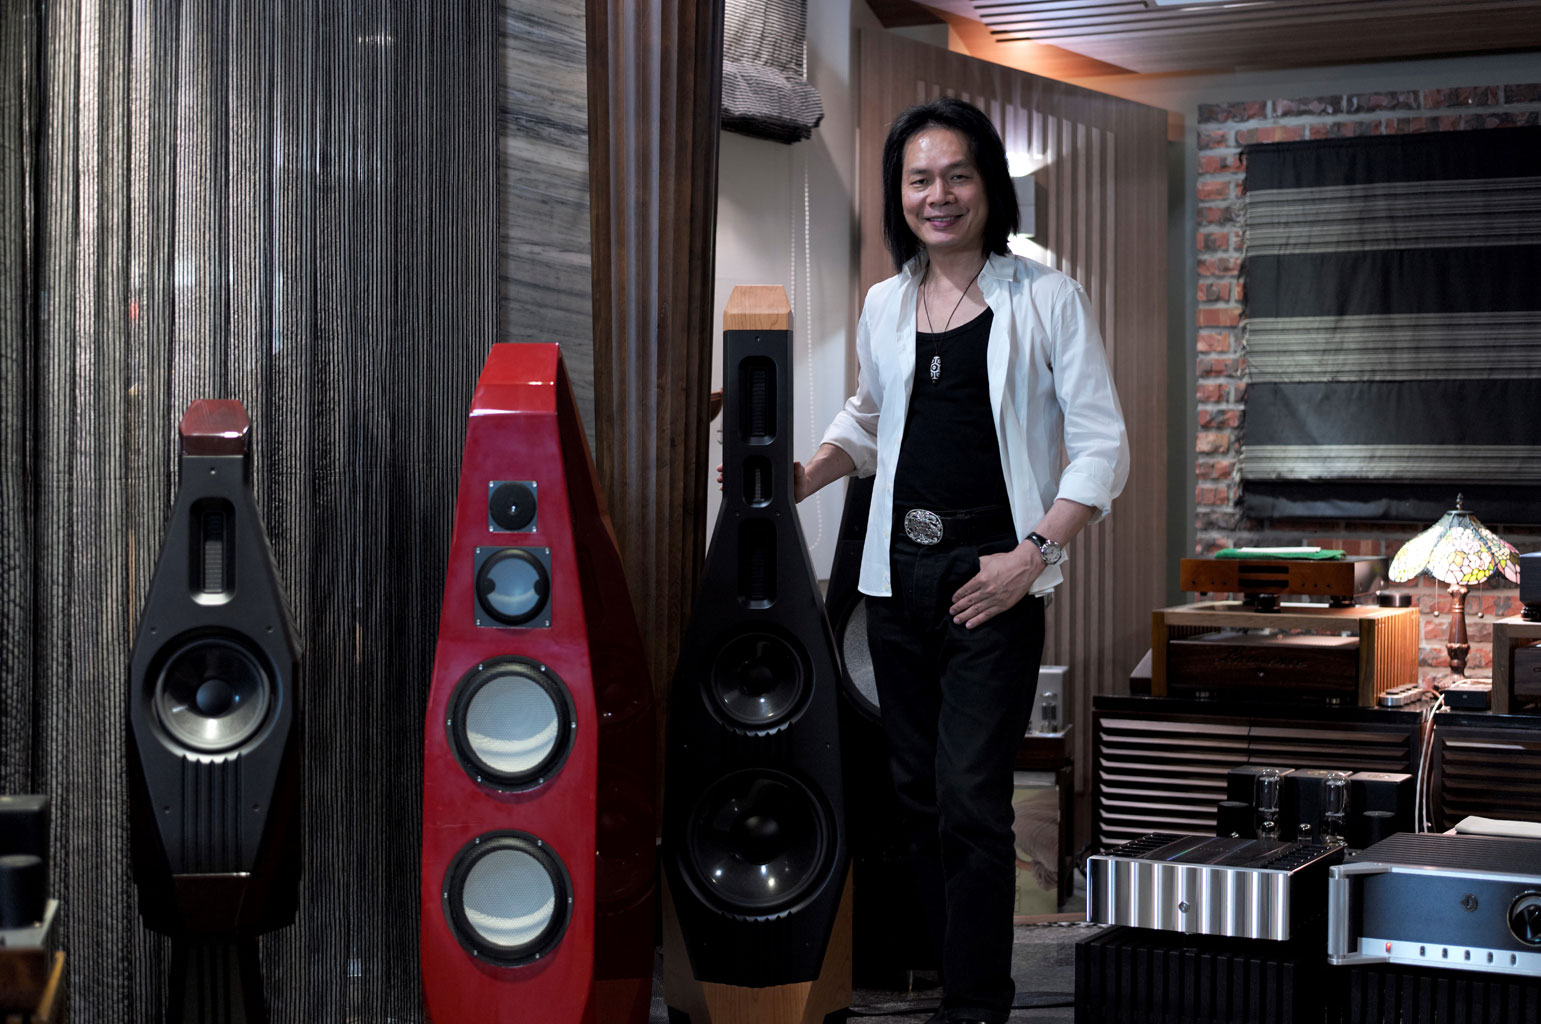 Lawrence Audio is Lawrence Liao